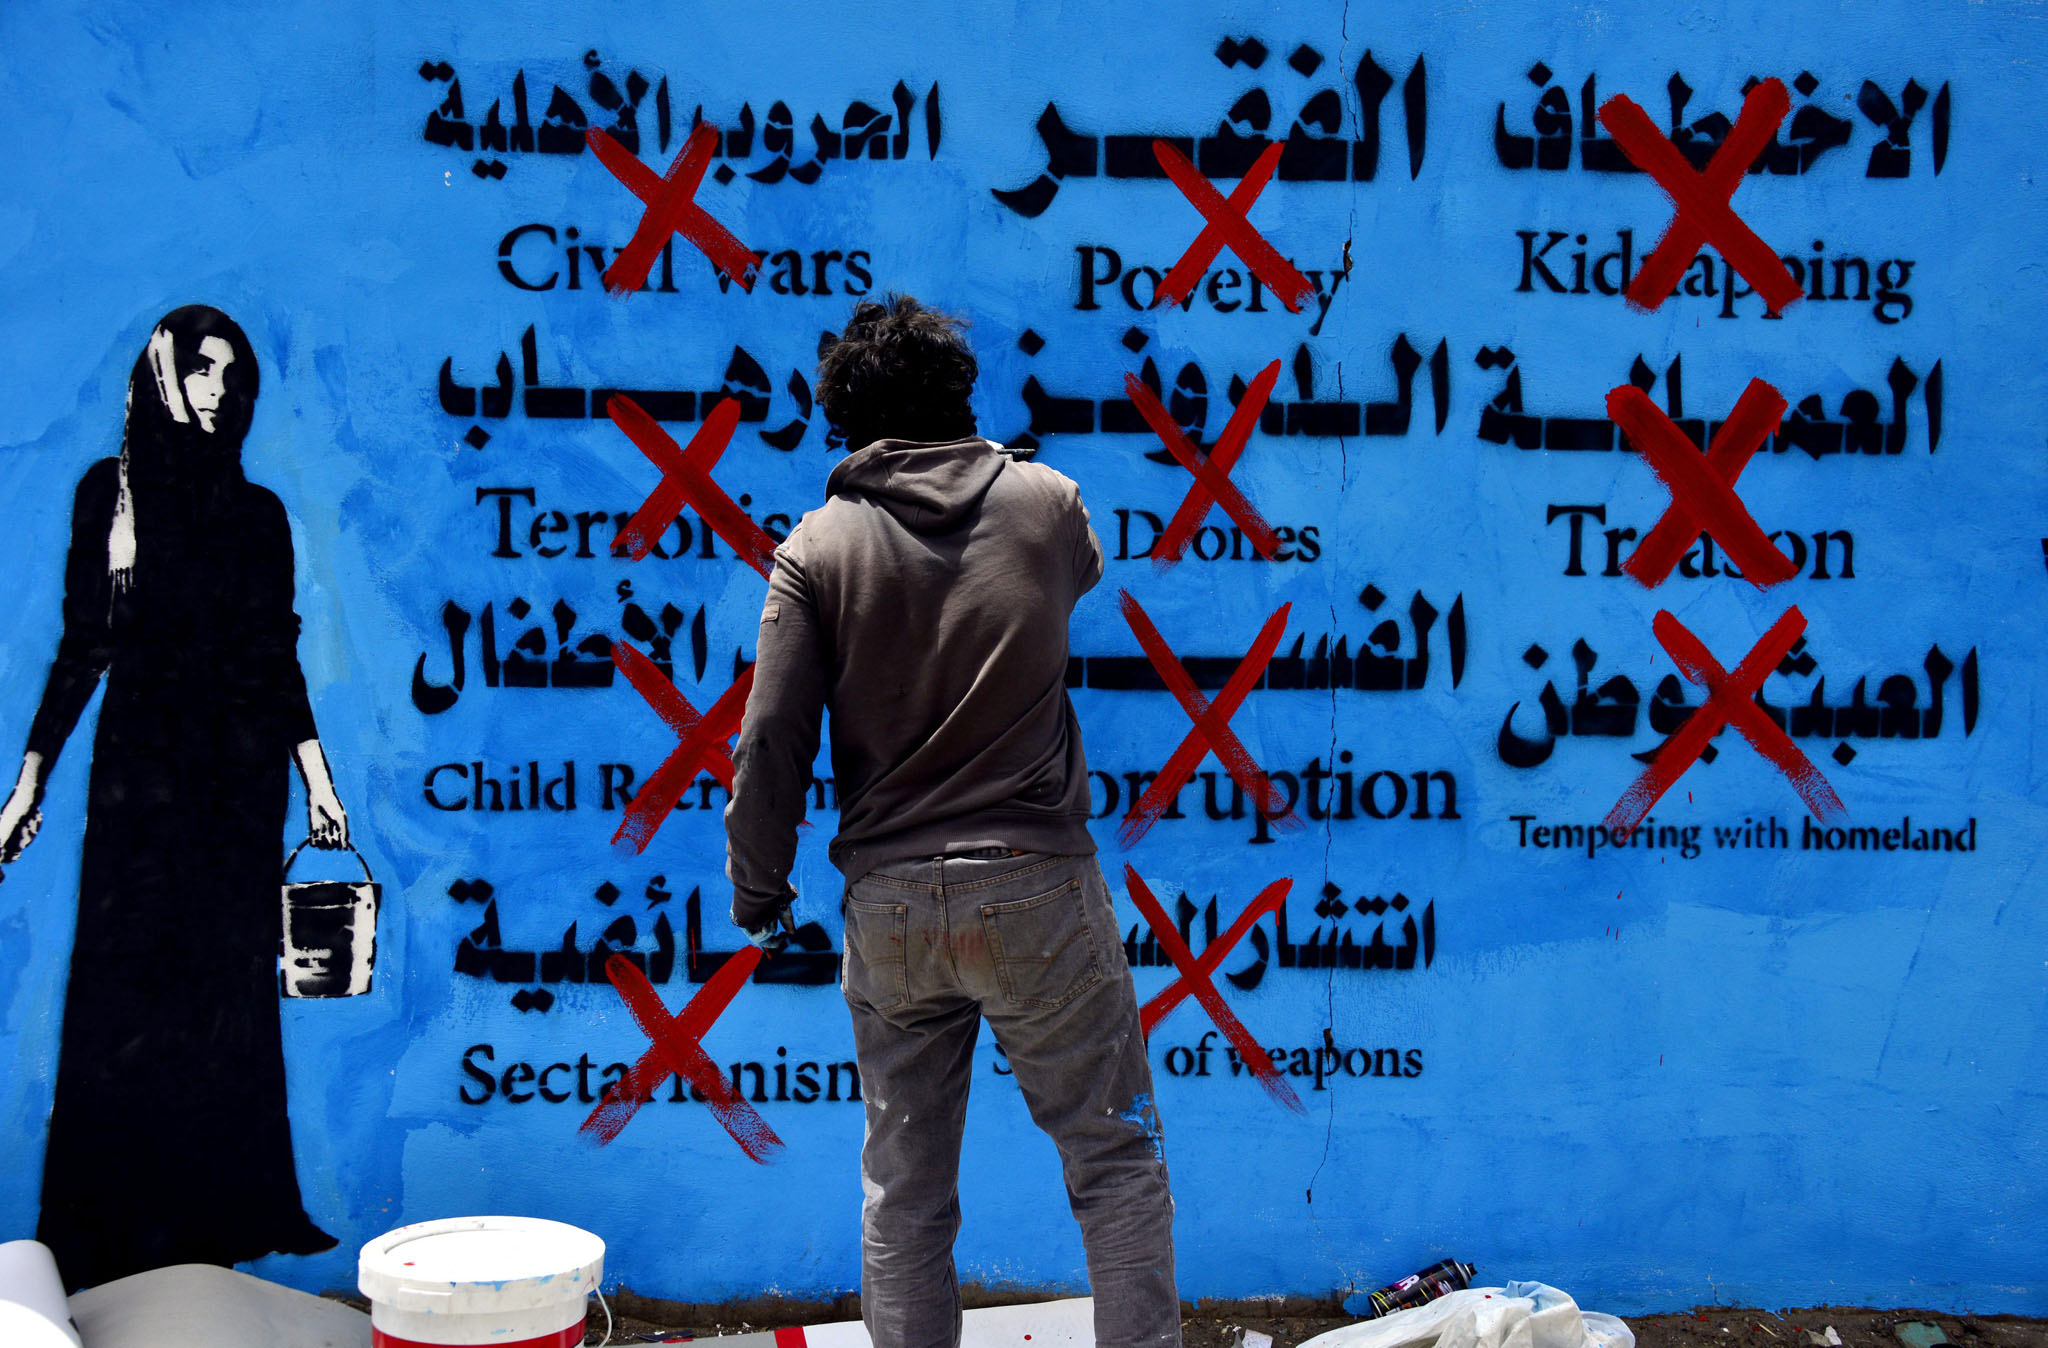 Graffiti campaign highlights concerns experienced by Yemenis...epaselect epa04282103 A Yemeni artist paints on a wall during a graffiti campaign expressing views on several social and political conflicts in Sanaía, Yemen, 25 June 2014. In response to social and political conflicts in Yemen right now, Yemeni artists and activists organized a graffiti campaign highlighting a set of concerns experienced by Yemenis, including civil wars, terrorism, child recruitment, sectarian wars, poverty, US drone war, corruption, spread of weapons and kidnapping.  EPA/YAHYA ARHAB